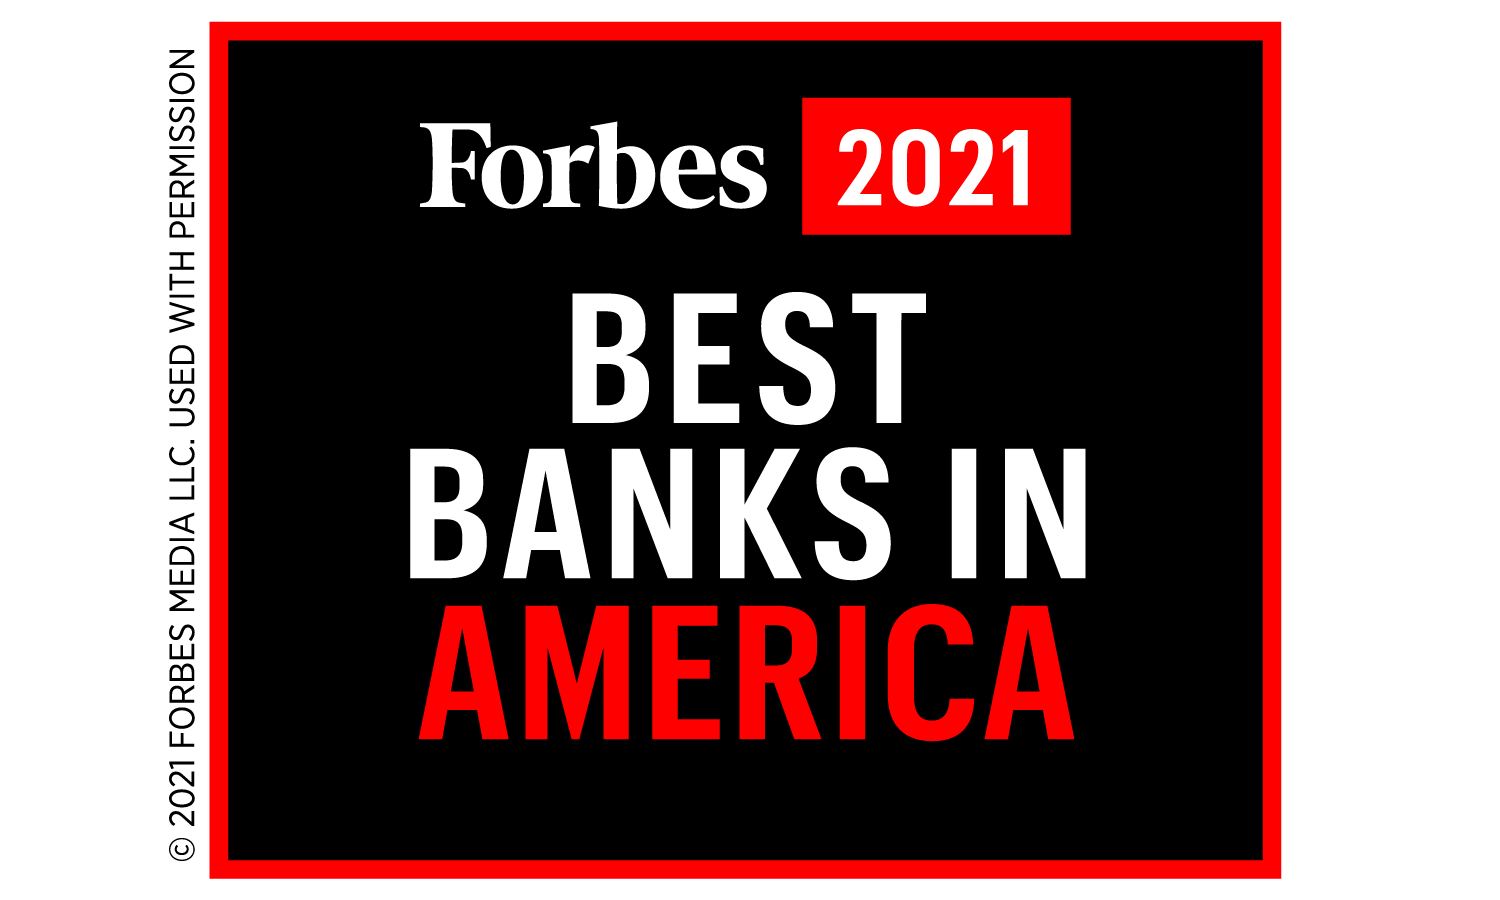 Forbes 2021. Best Banks in America.